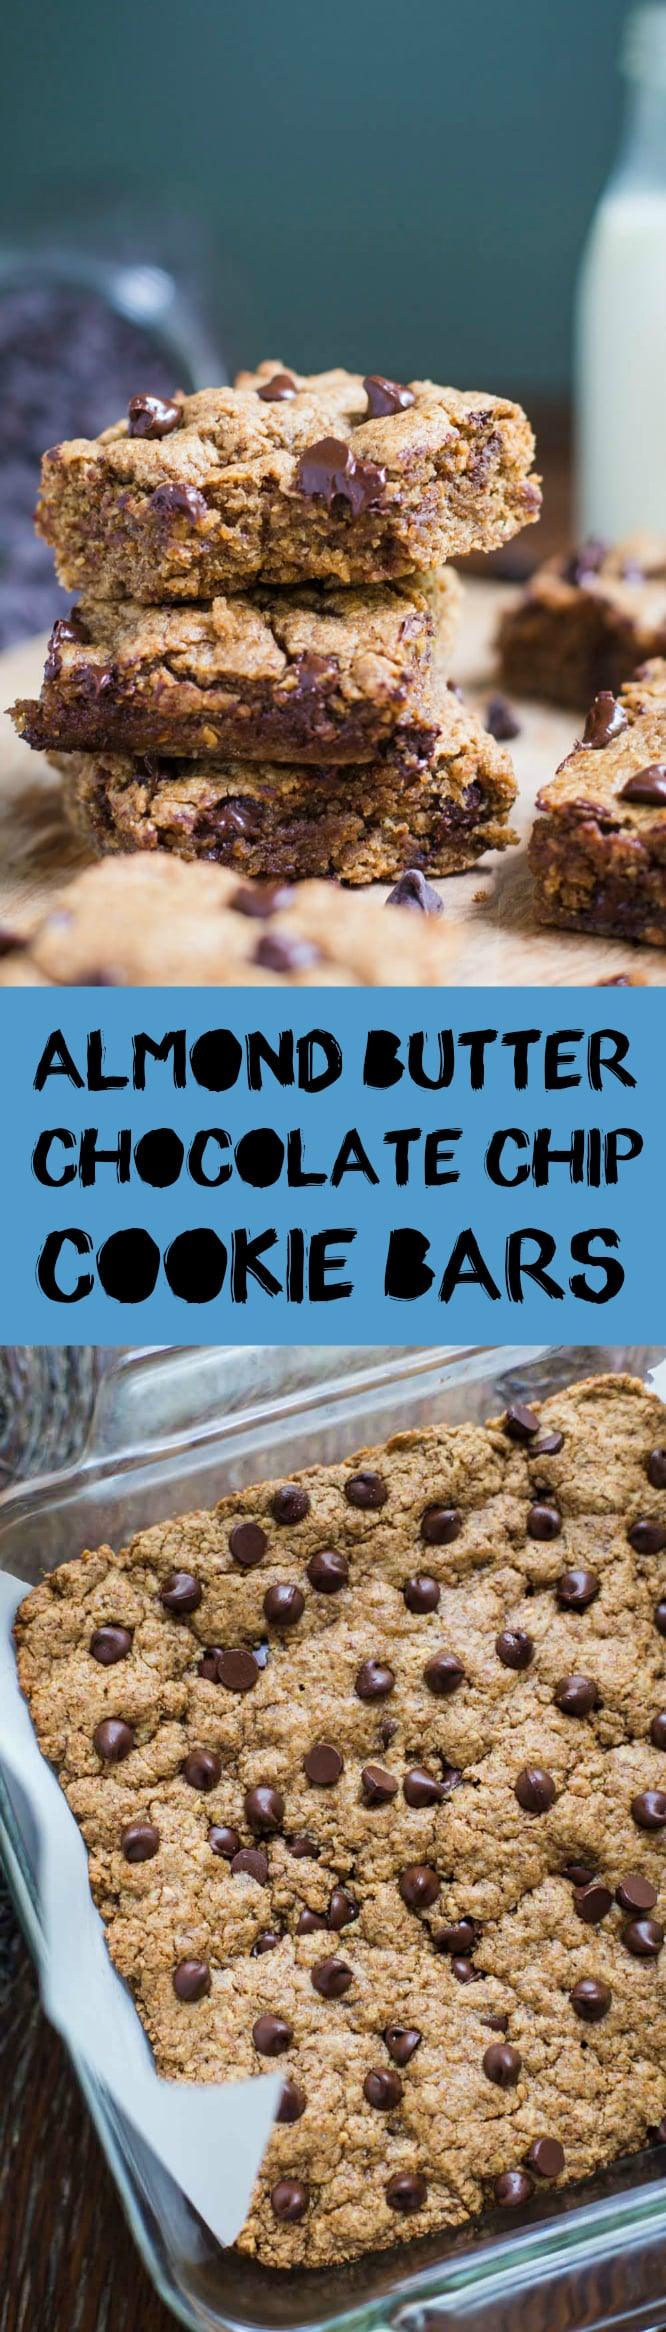 Almond Butter Chocolate Chip Cookie Bars | B. Britnell